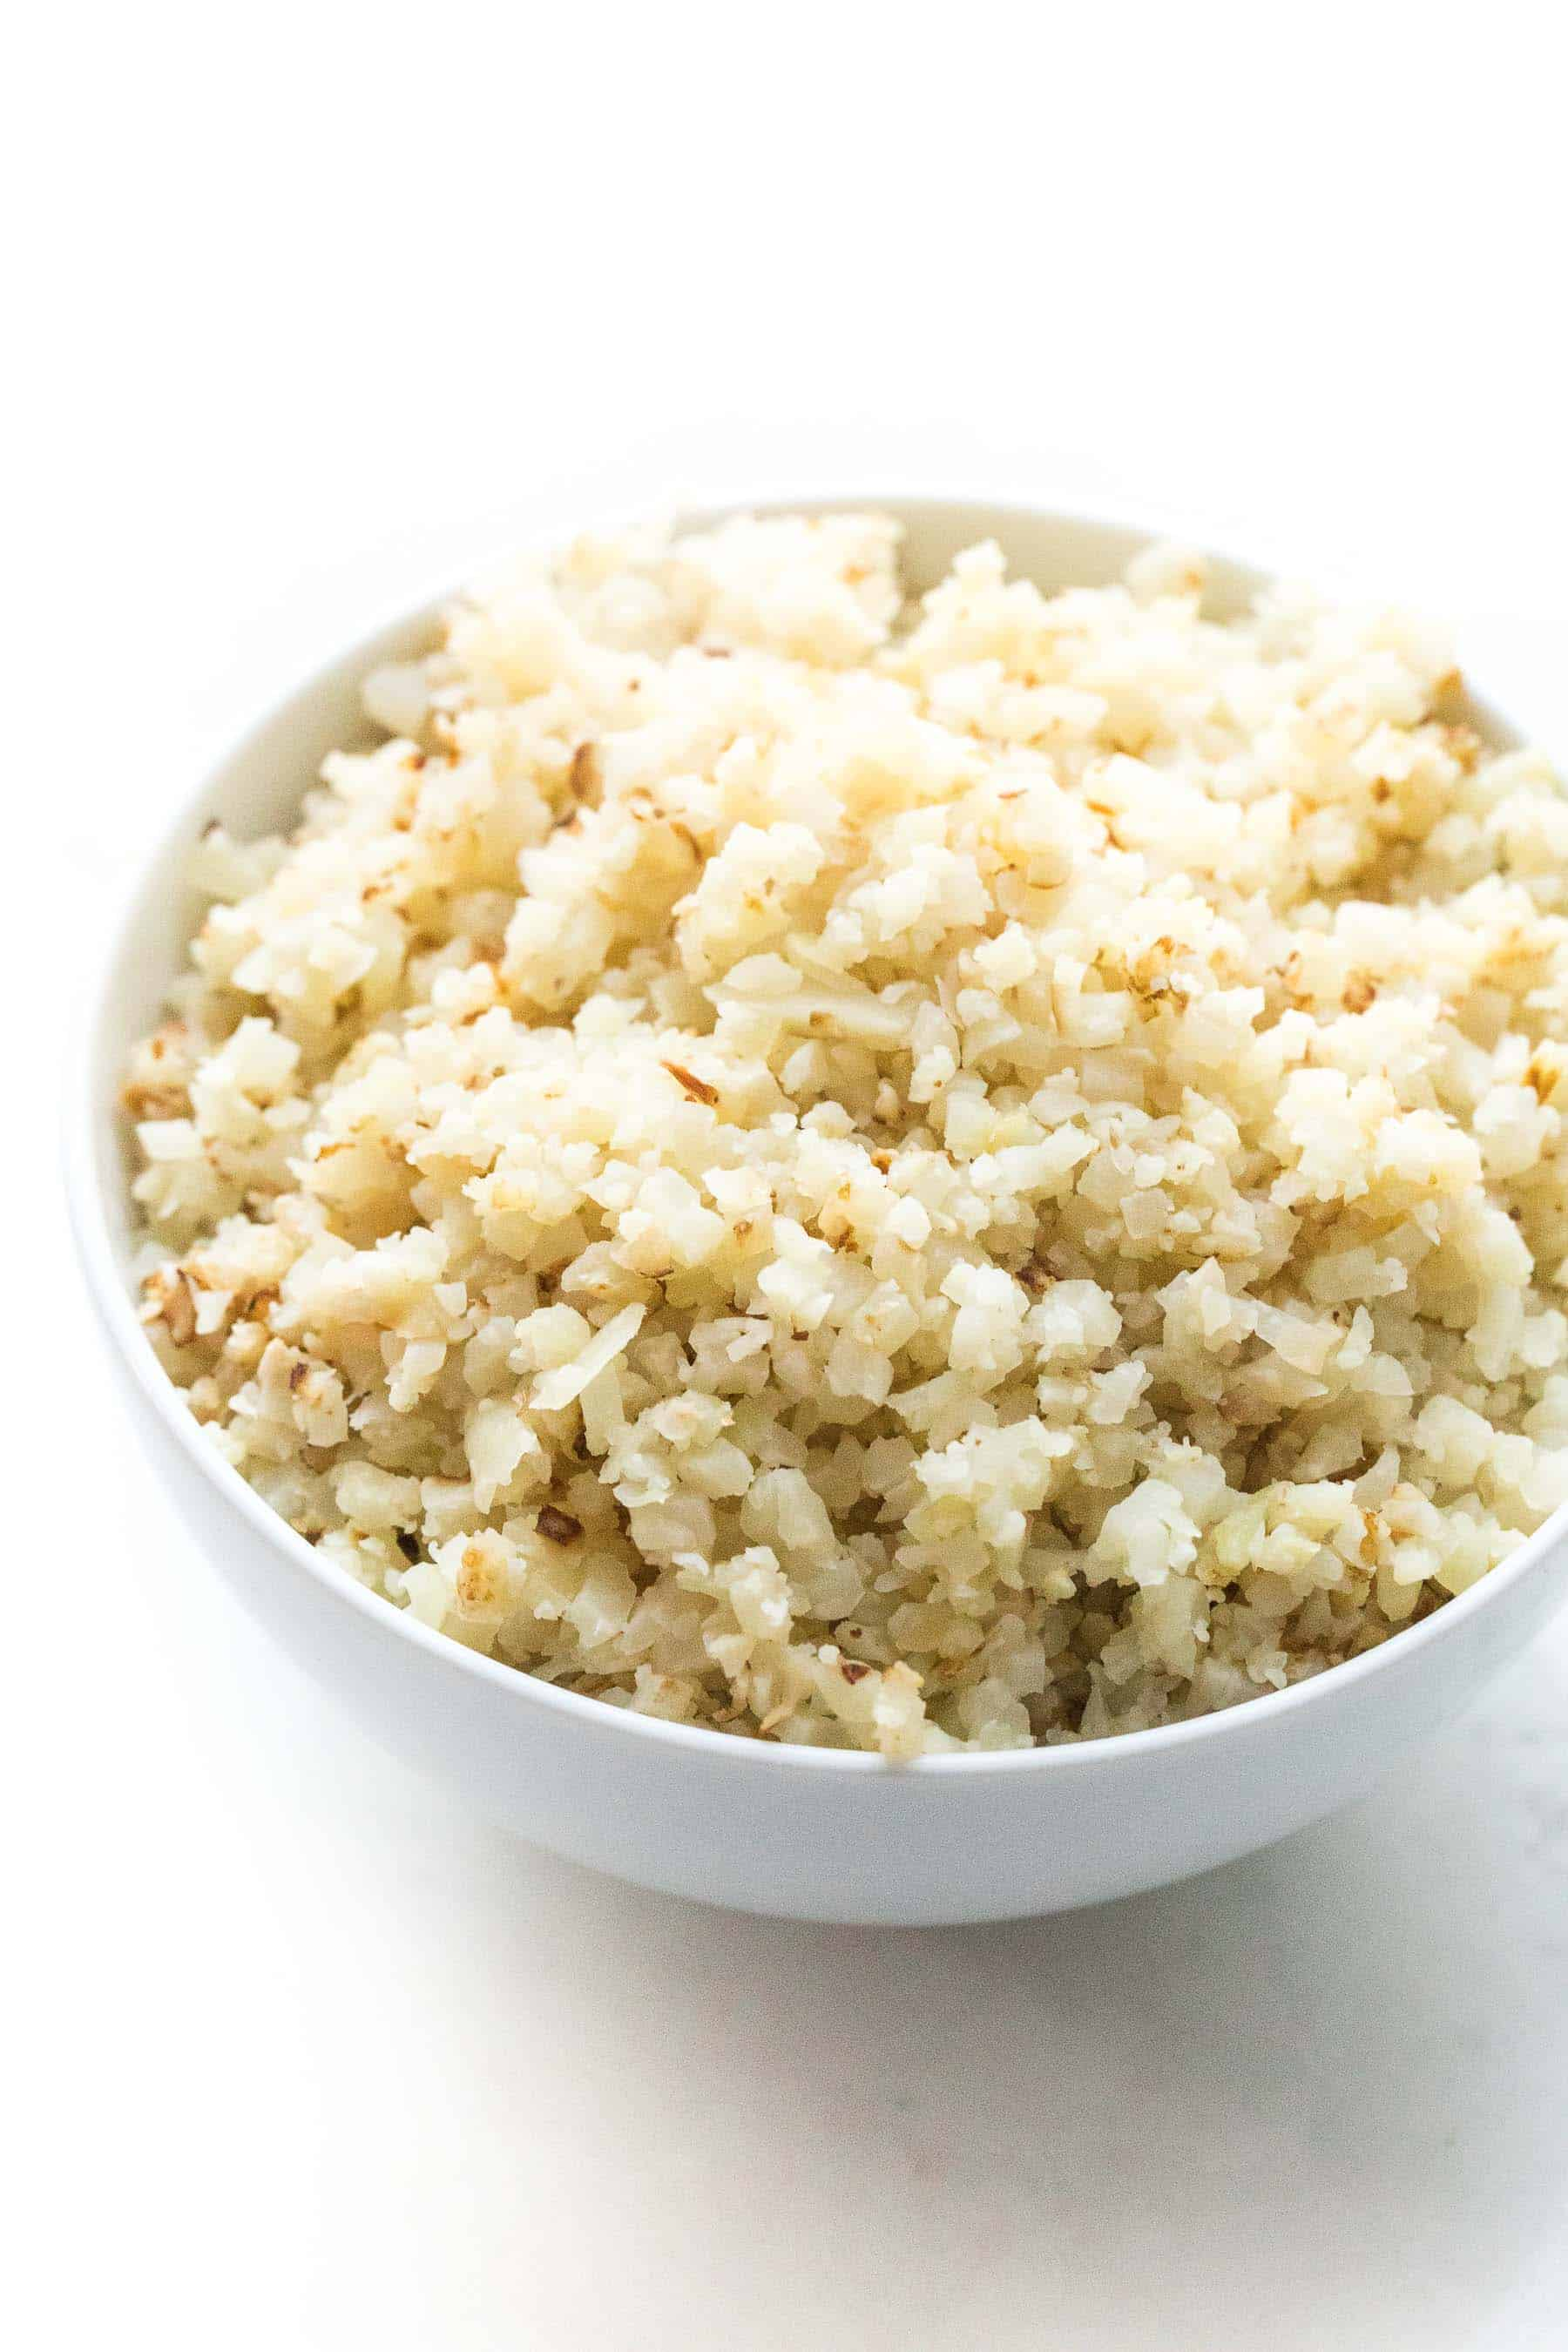 cauliflower rice in a white bowl on a white background